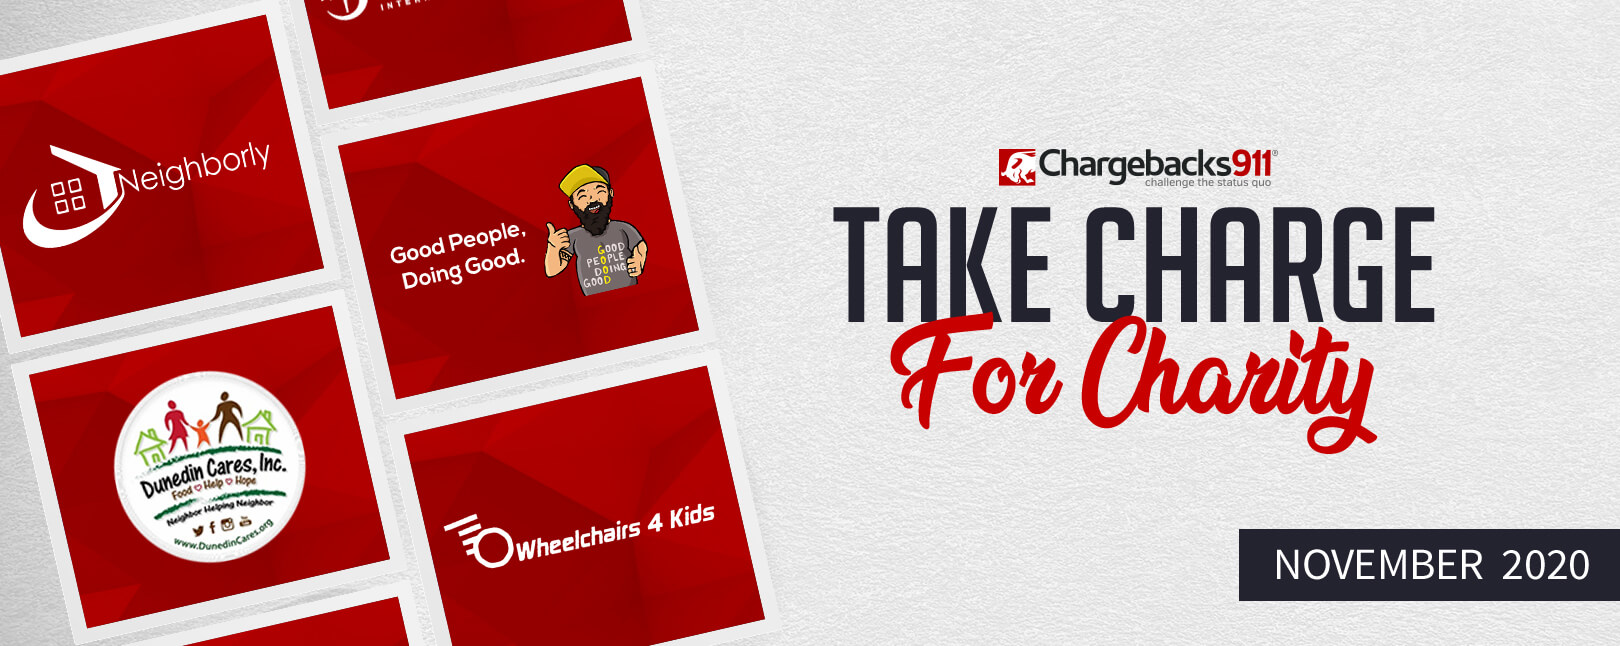 Take Charge for Charity – November 2020